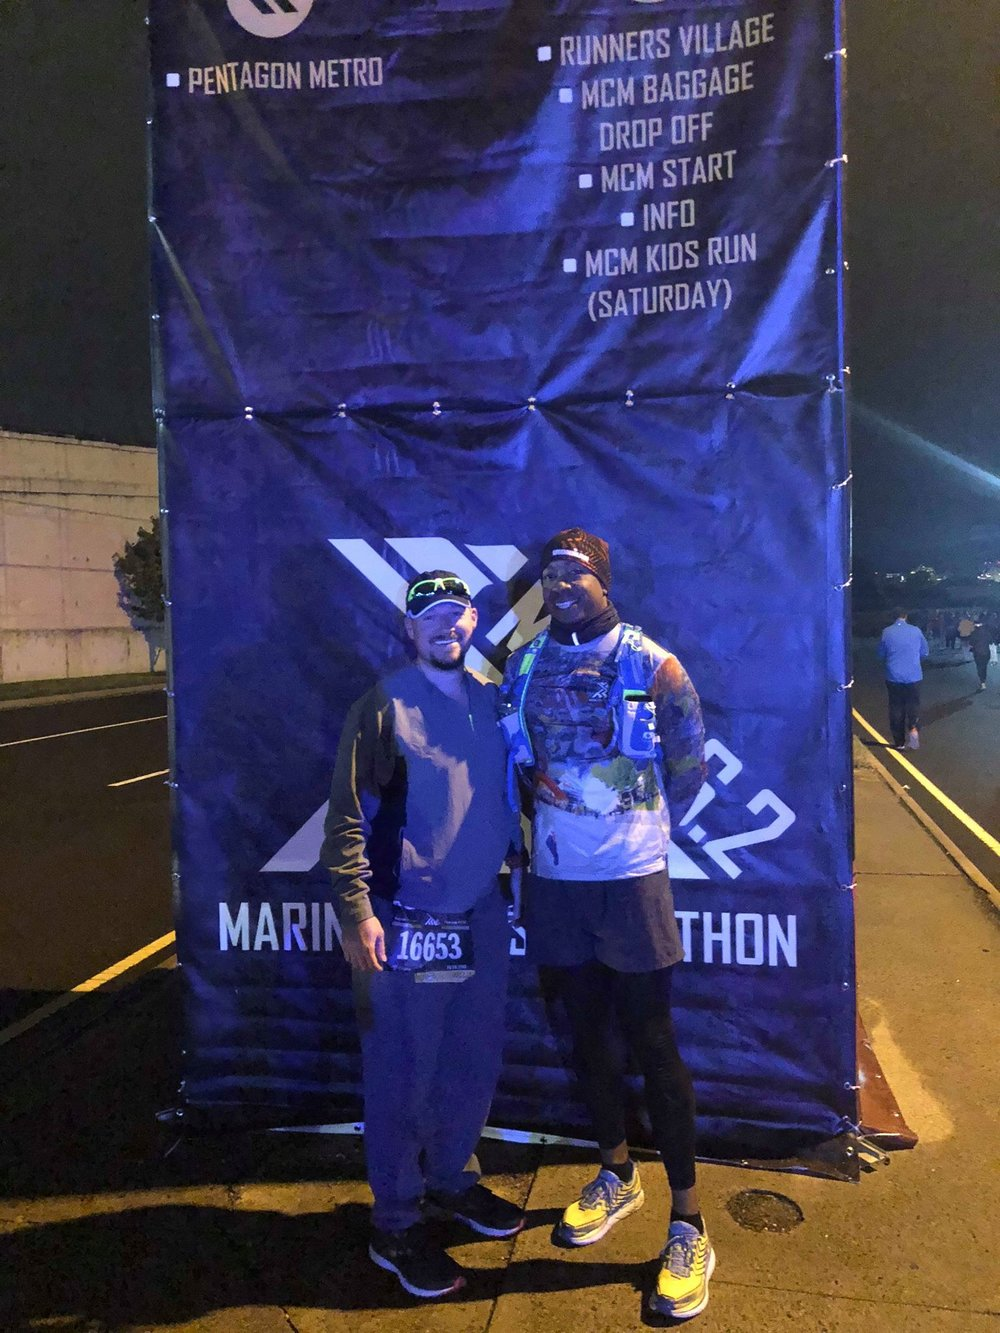 Coach_Terry_Wilson_Pursuit_of_The_Perfect_Race_Marine_Corps_Marathon_2018_5.jpg